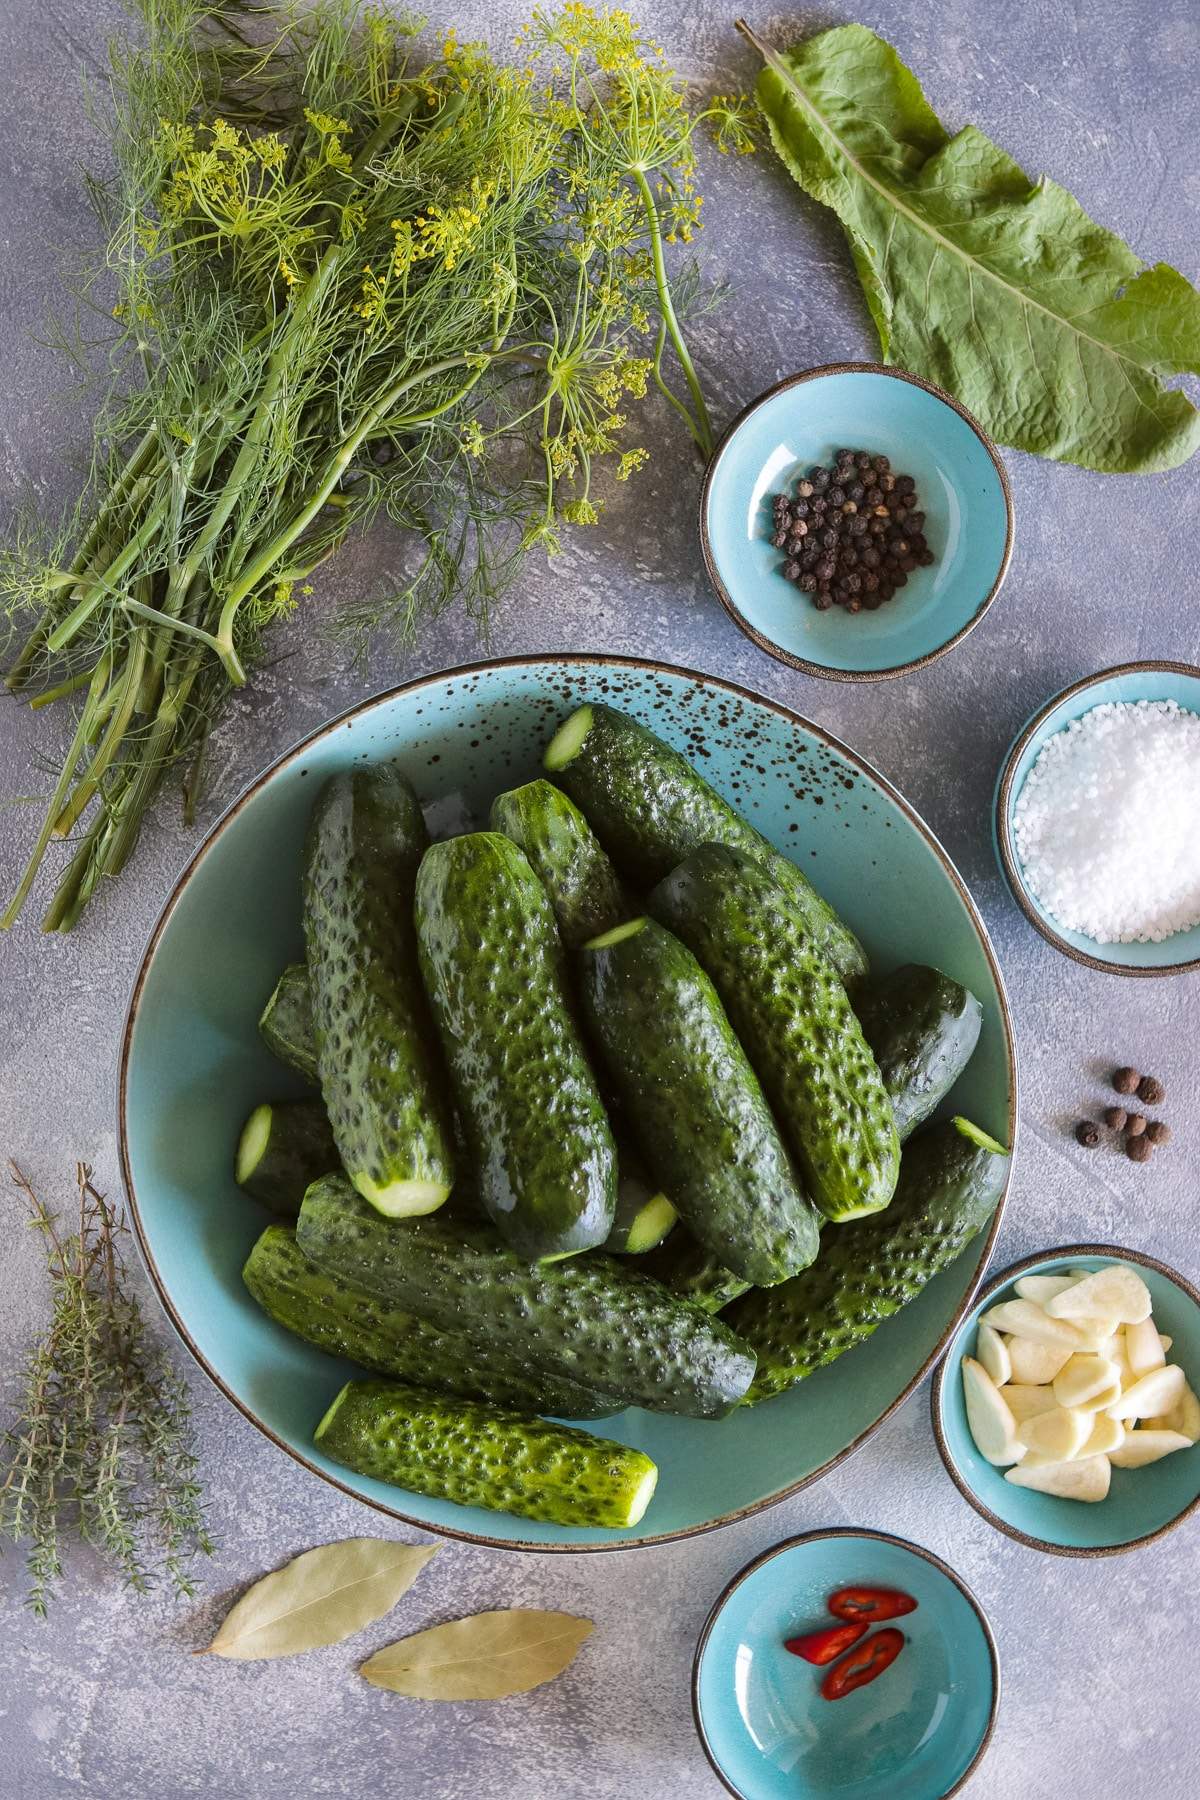 Ingredients for Russian dill pickles